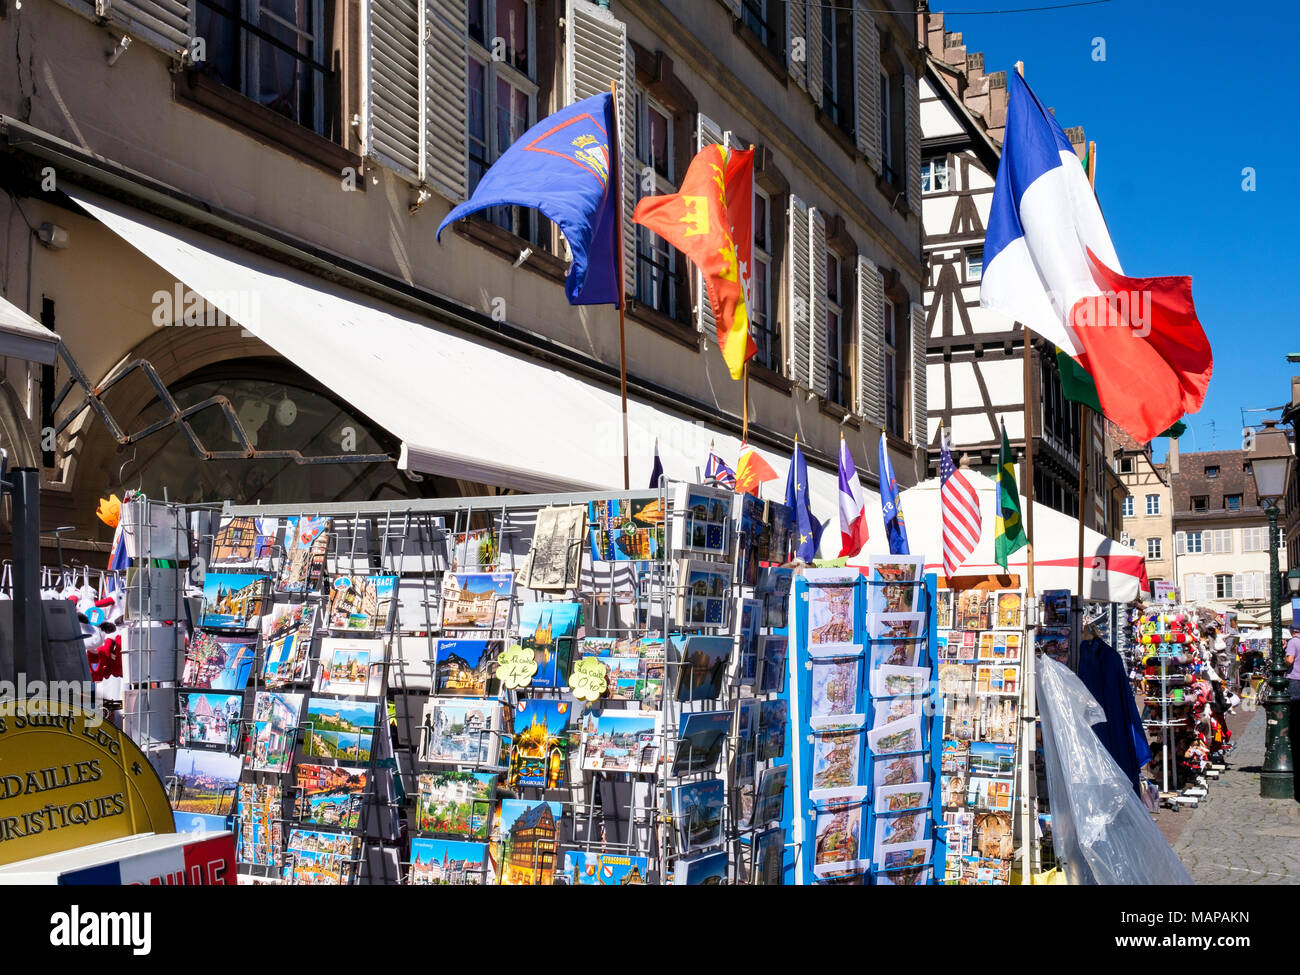 Postcards for sale on display stands, flying French flag, place de la Cathédrale, cathedral square, Strasbourg, Alsace, France, Europe, - Stock Image